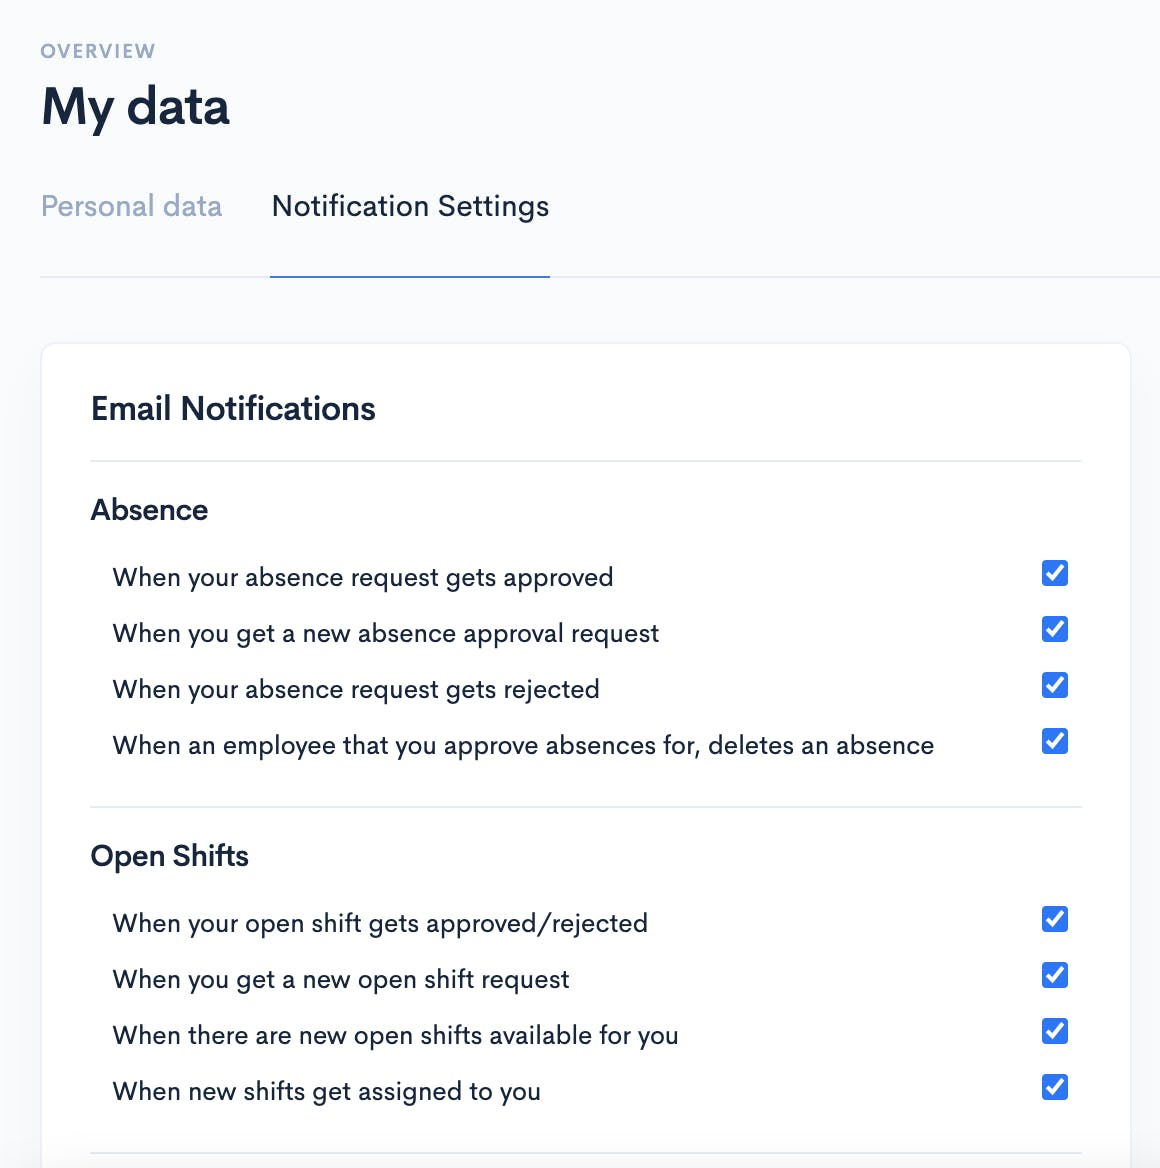 Flair's Notification Settings